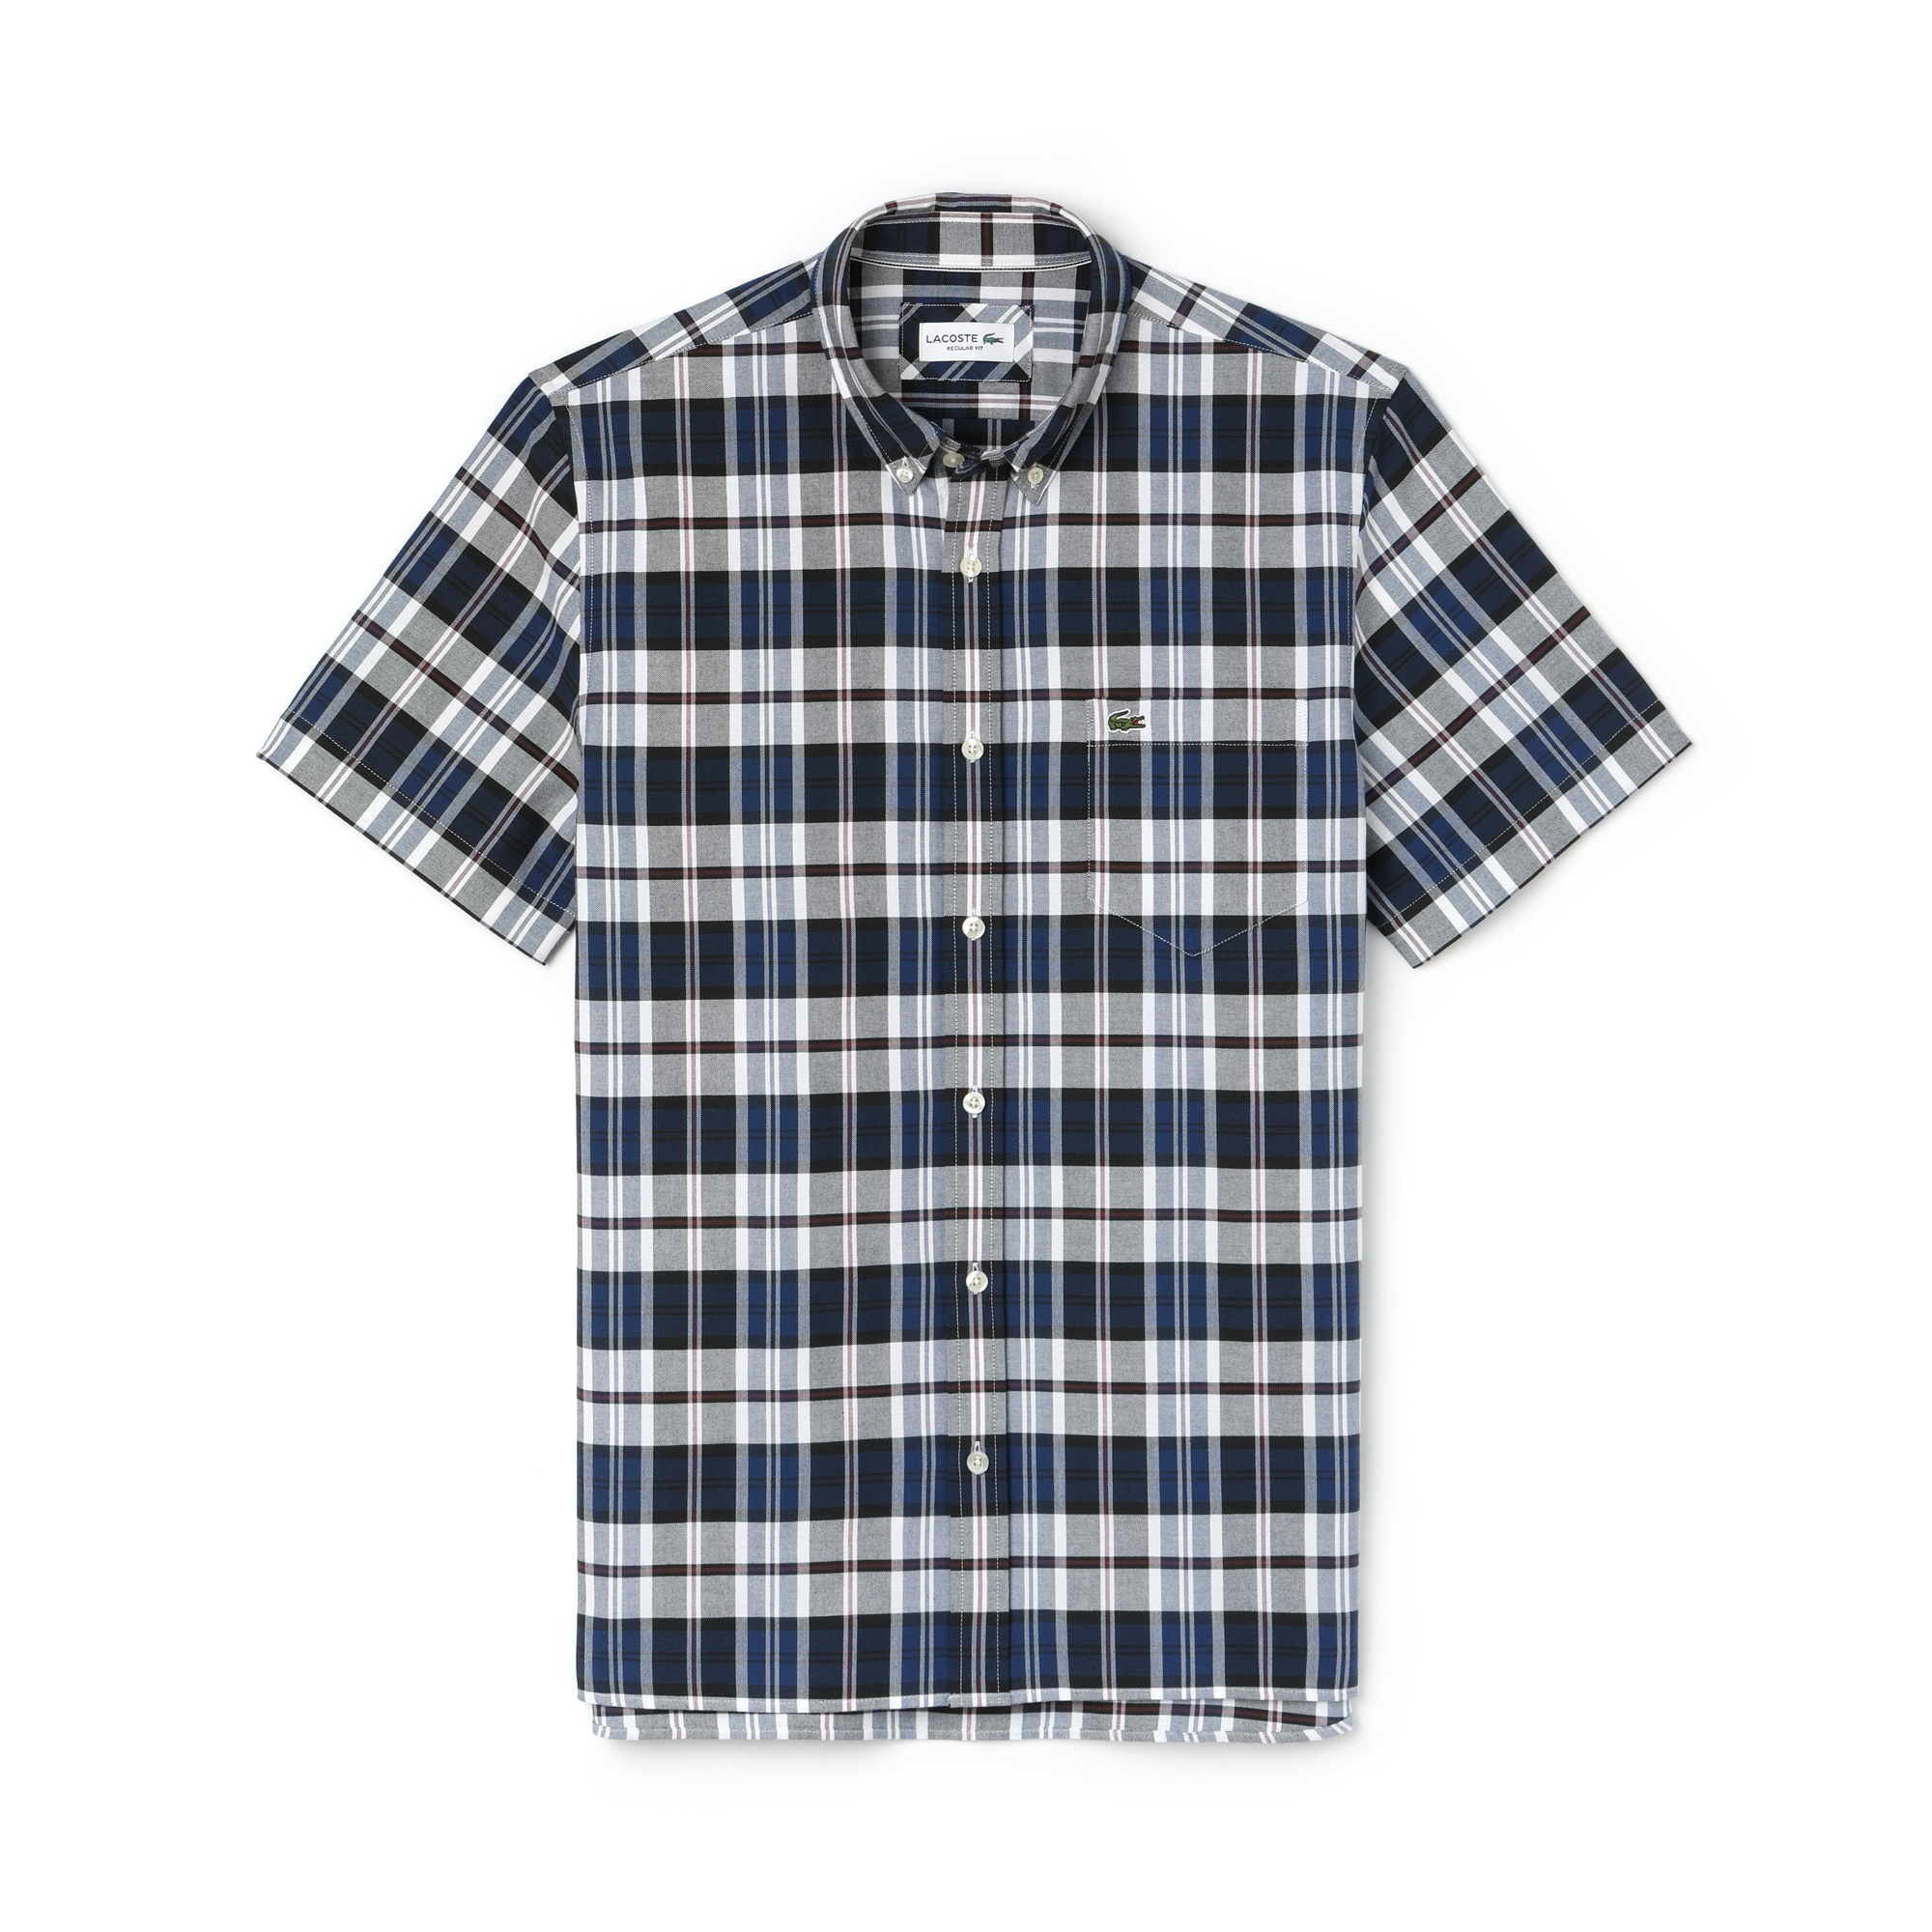 Men's Regular Fit Colored Check Cotton Oxford Shirt